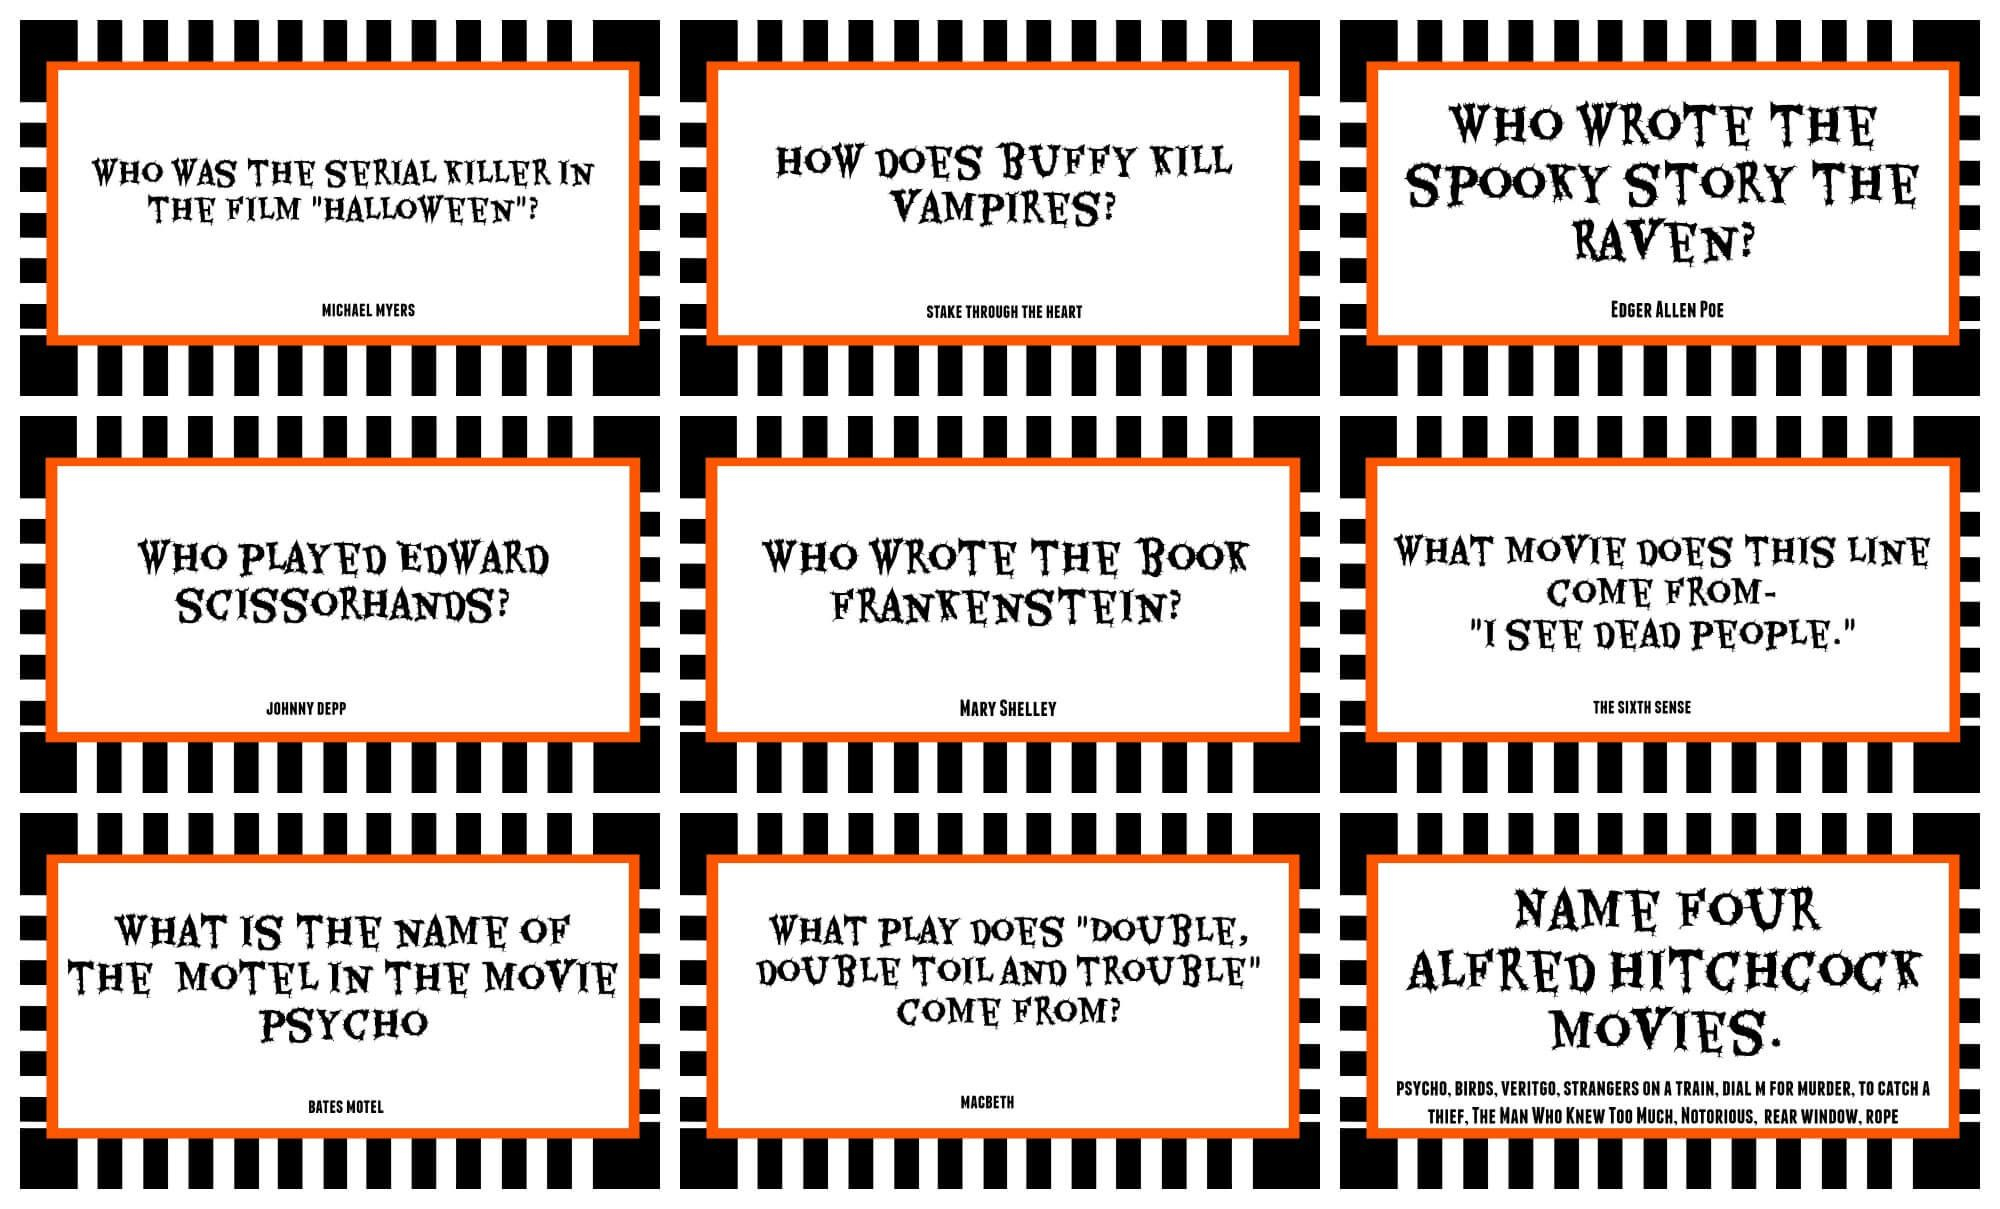 Halloween Movie Trivia Questions And Answers - Google Search - Halloween Trivia Questions And Answers Free Printable